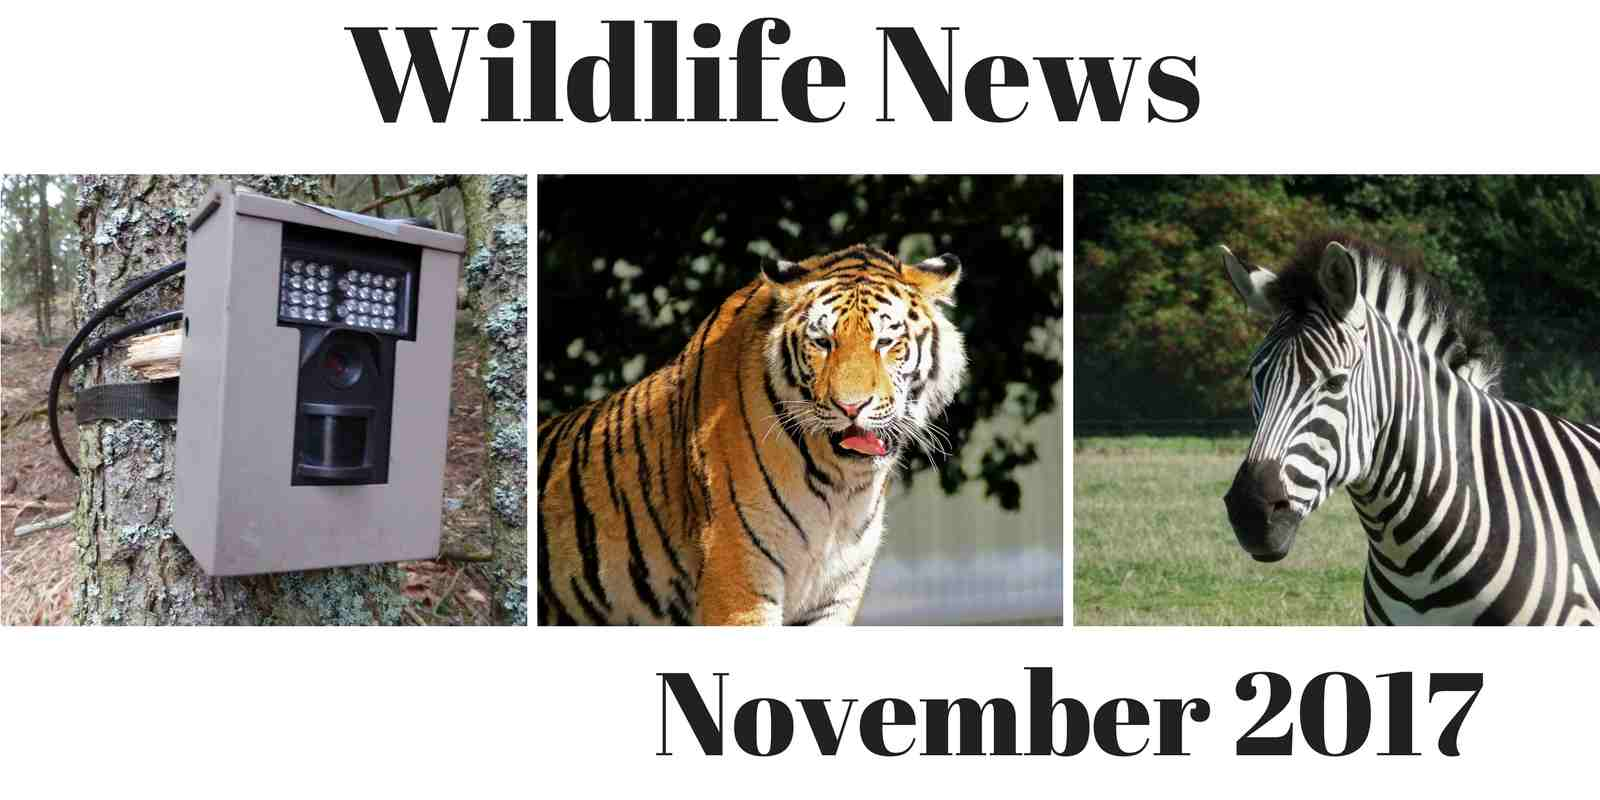 Wildlife News November 2017